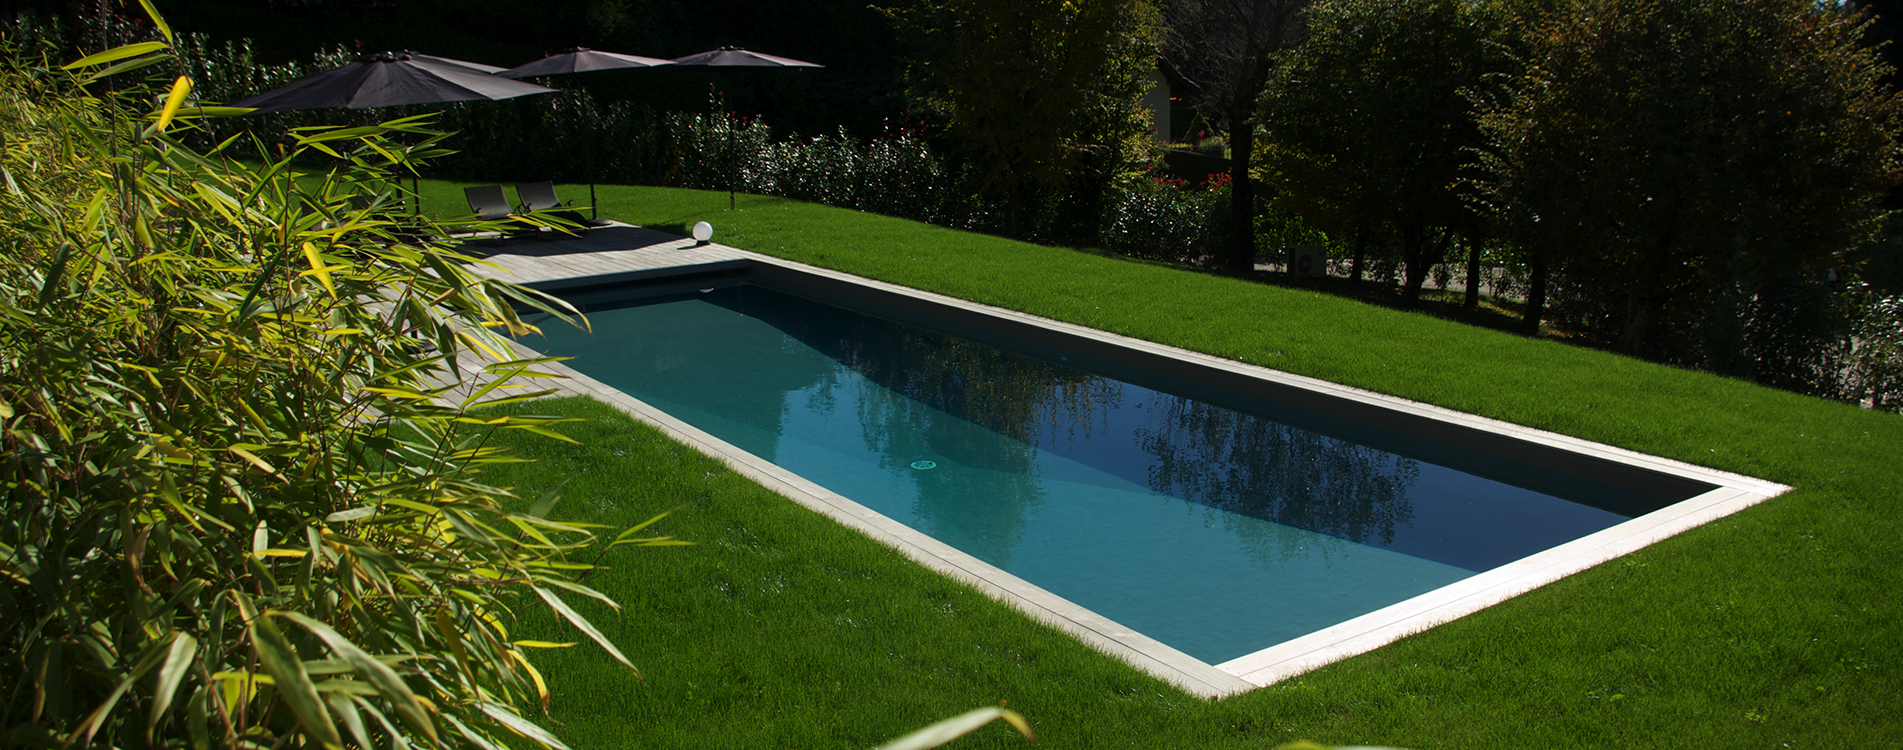 Solutions de traitement eau piscine nicollier piscines for Aspirateur piscine liner